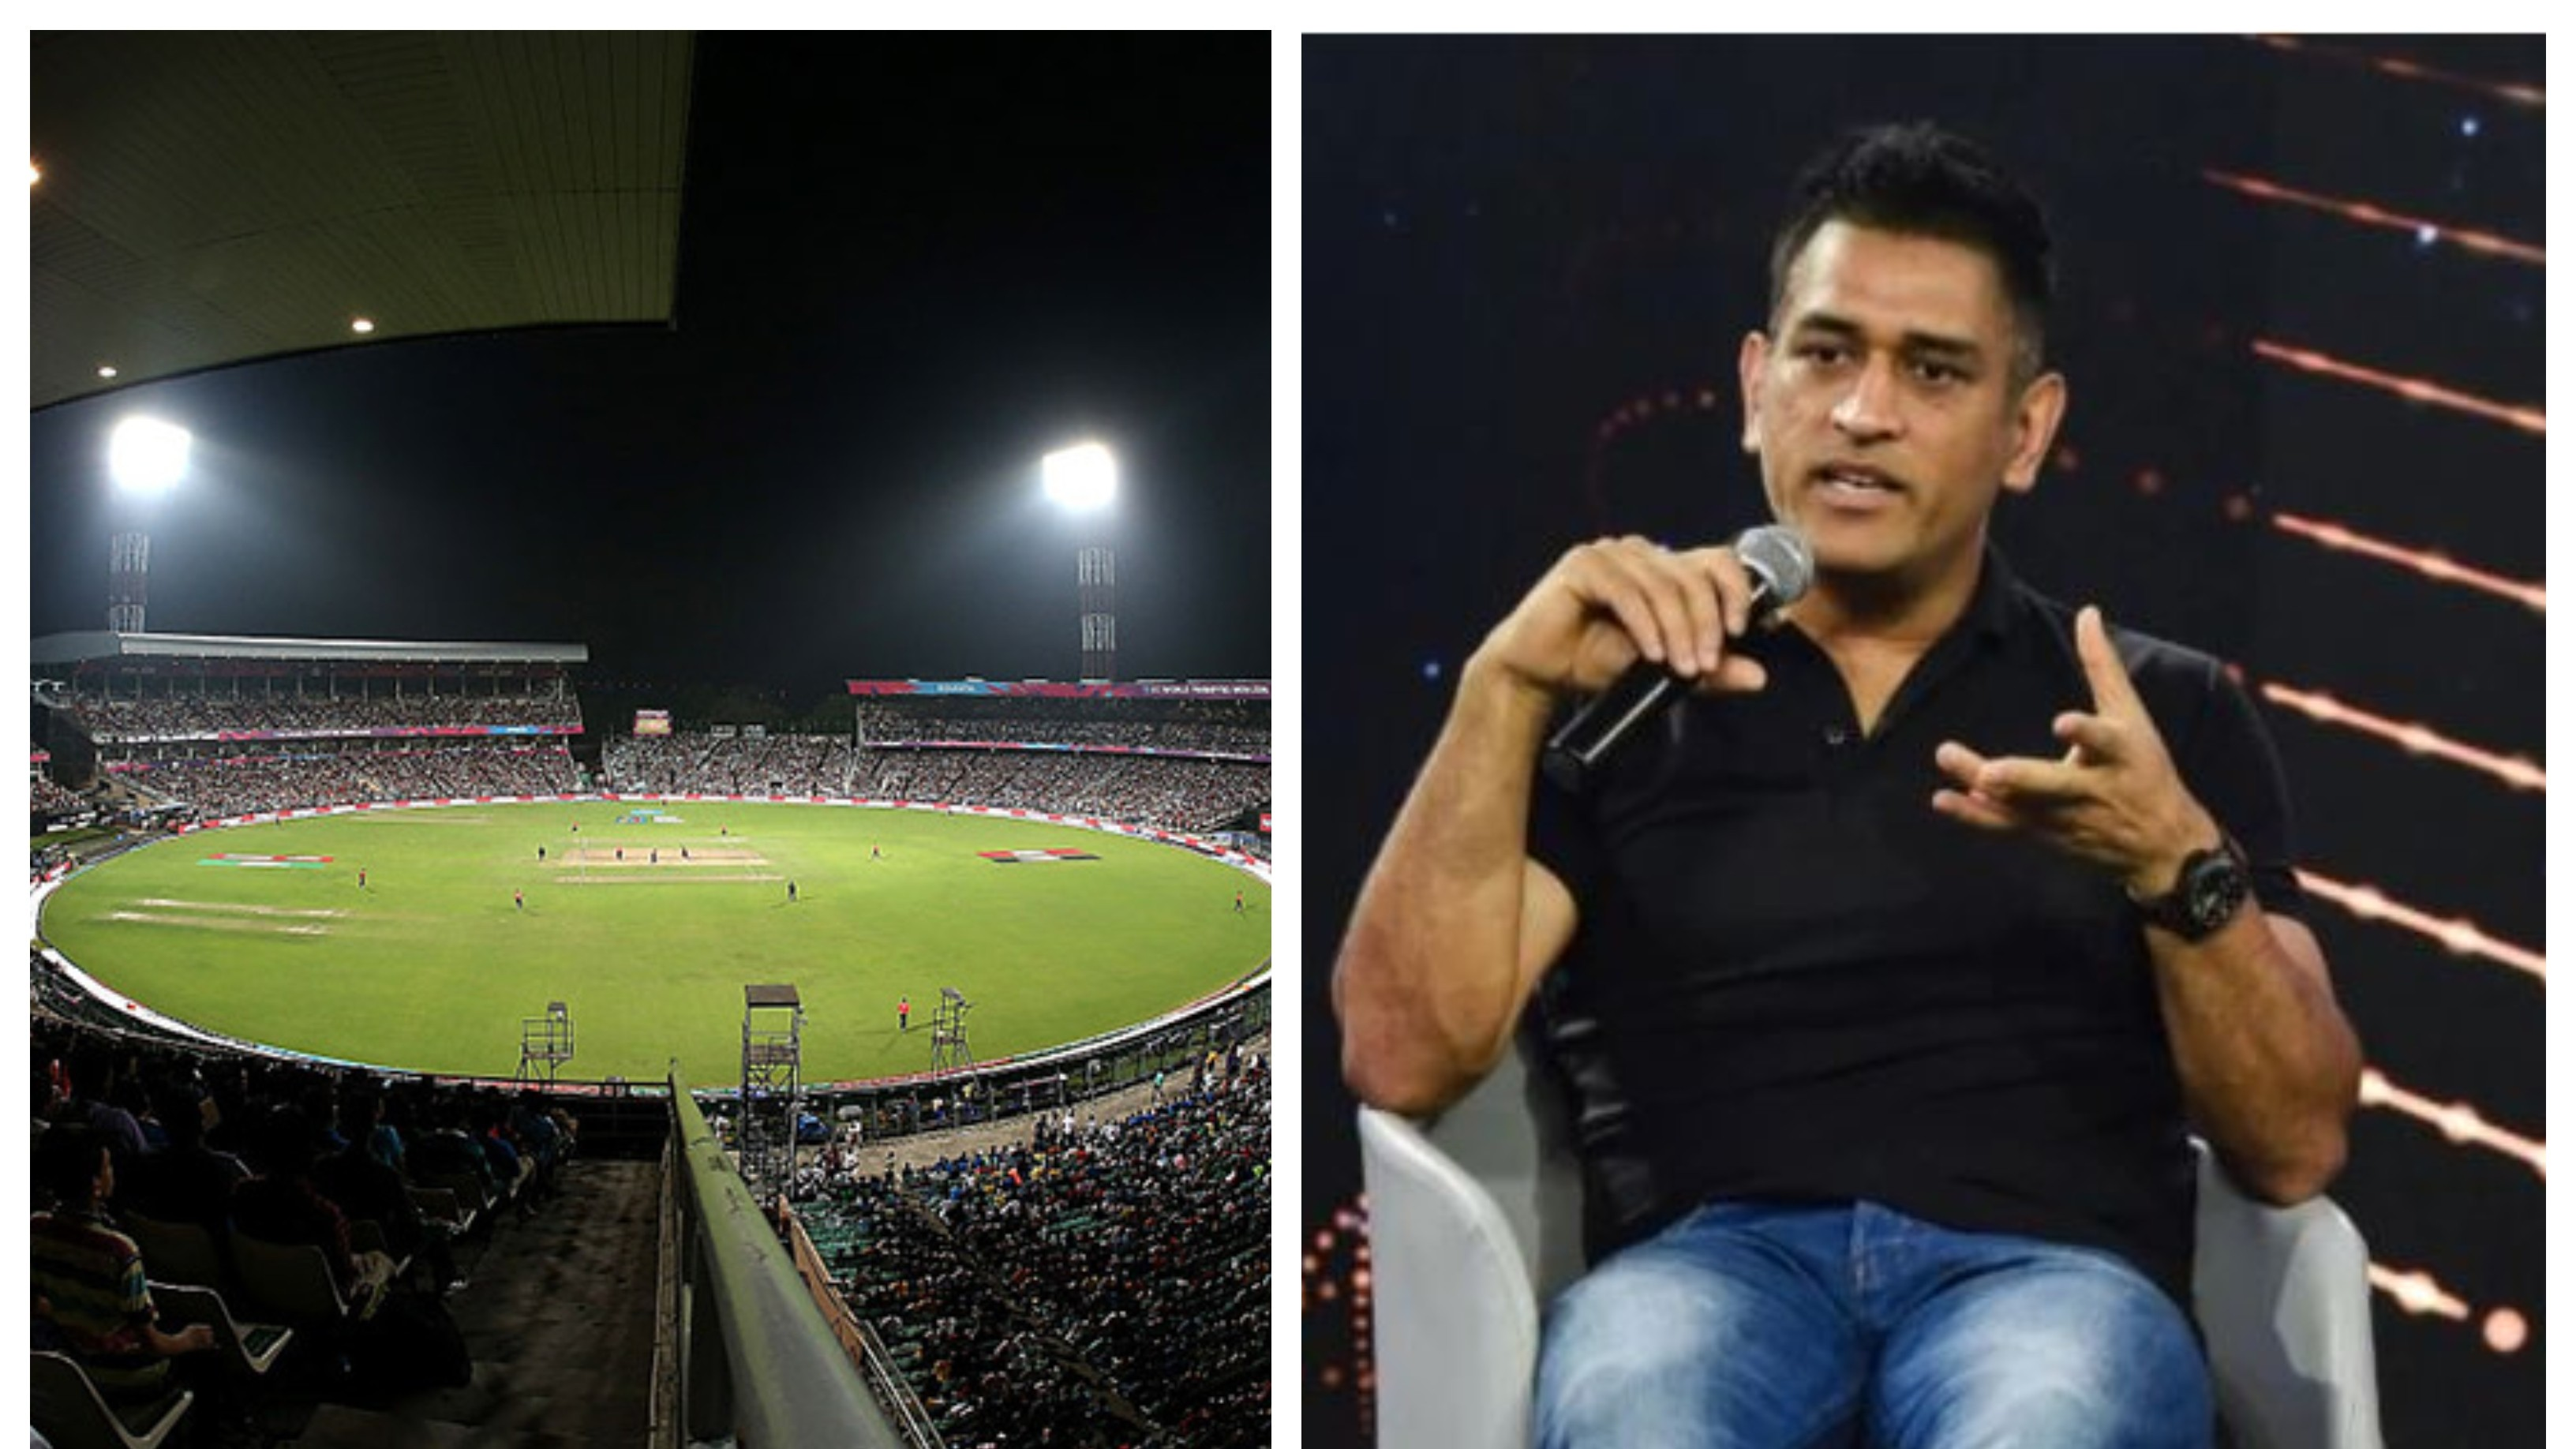 IND v BAN 2019: MS Dhoni set for commentary stint during the historic D/N Test in Kolkata